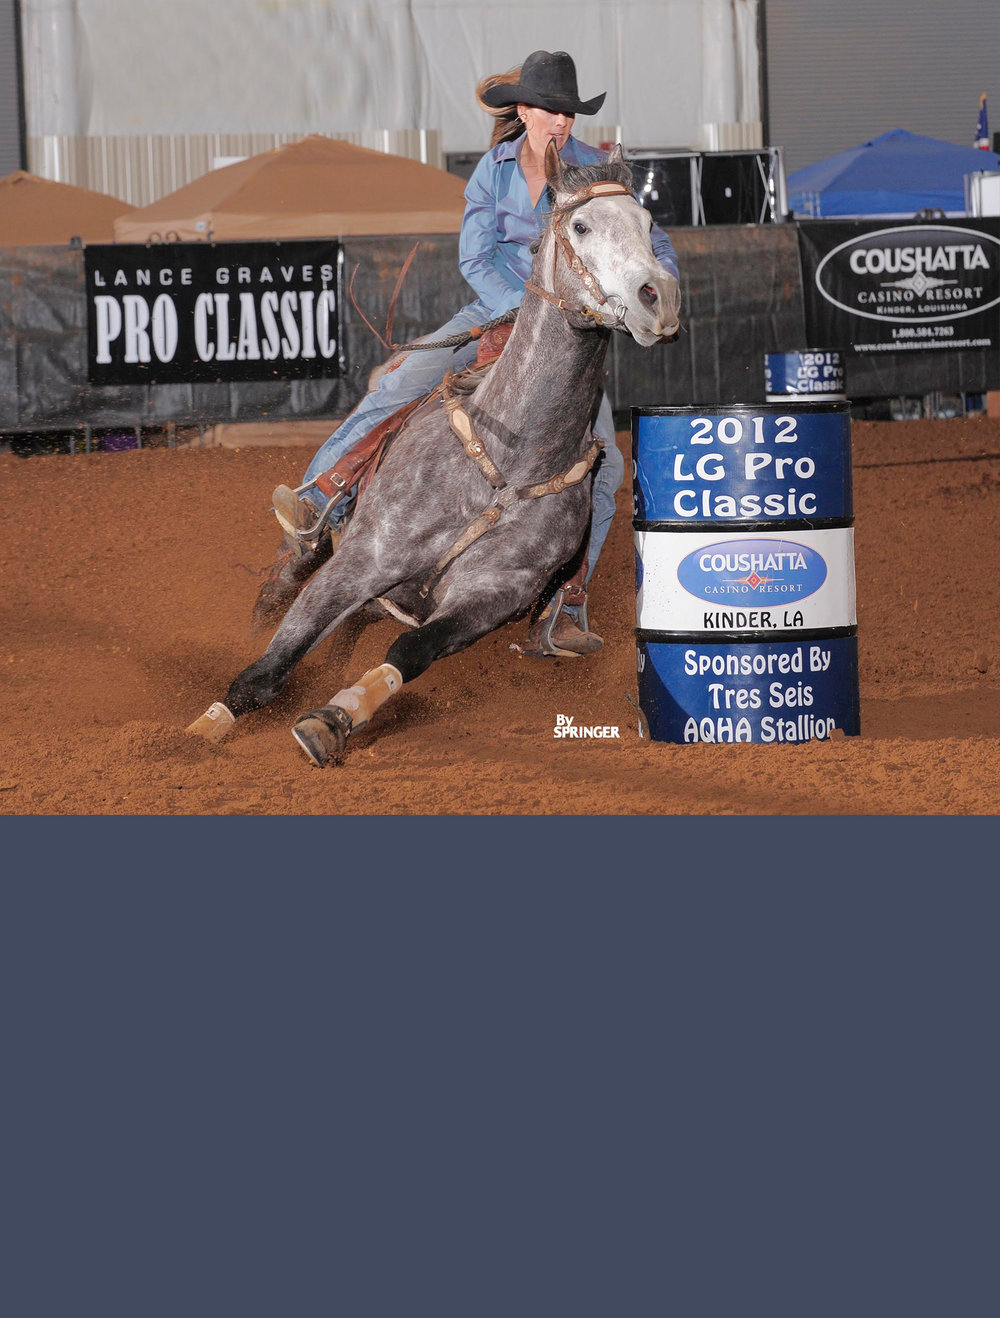 2012   2nd Highest Money Winning Futurity Horse in the Nation  Old PacWest Slot Race Champion  BBR Finals Slot Futurity Champion  Ecurie 5-55 Drummond Futurity Champion  LG Pro Classic Slot Race Reserve Champion